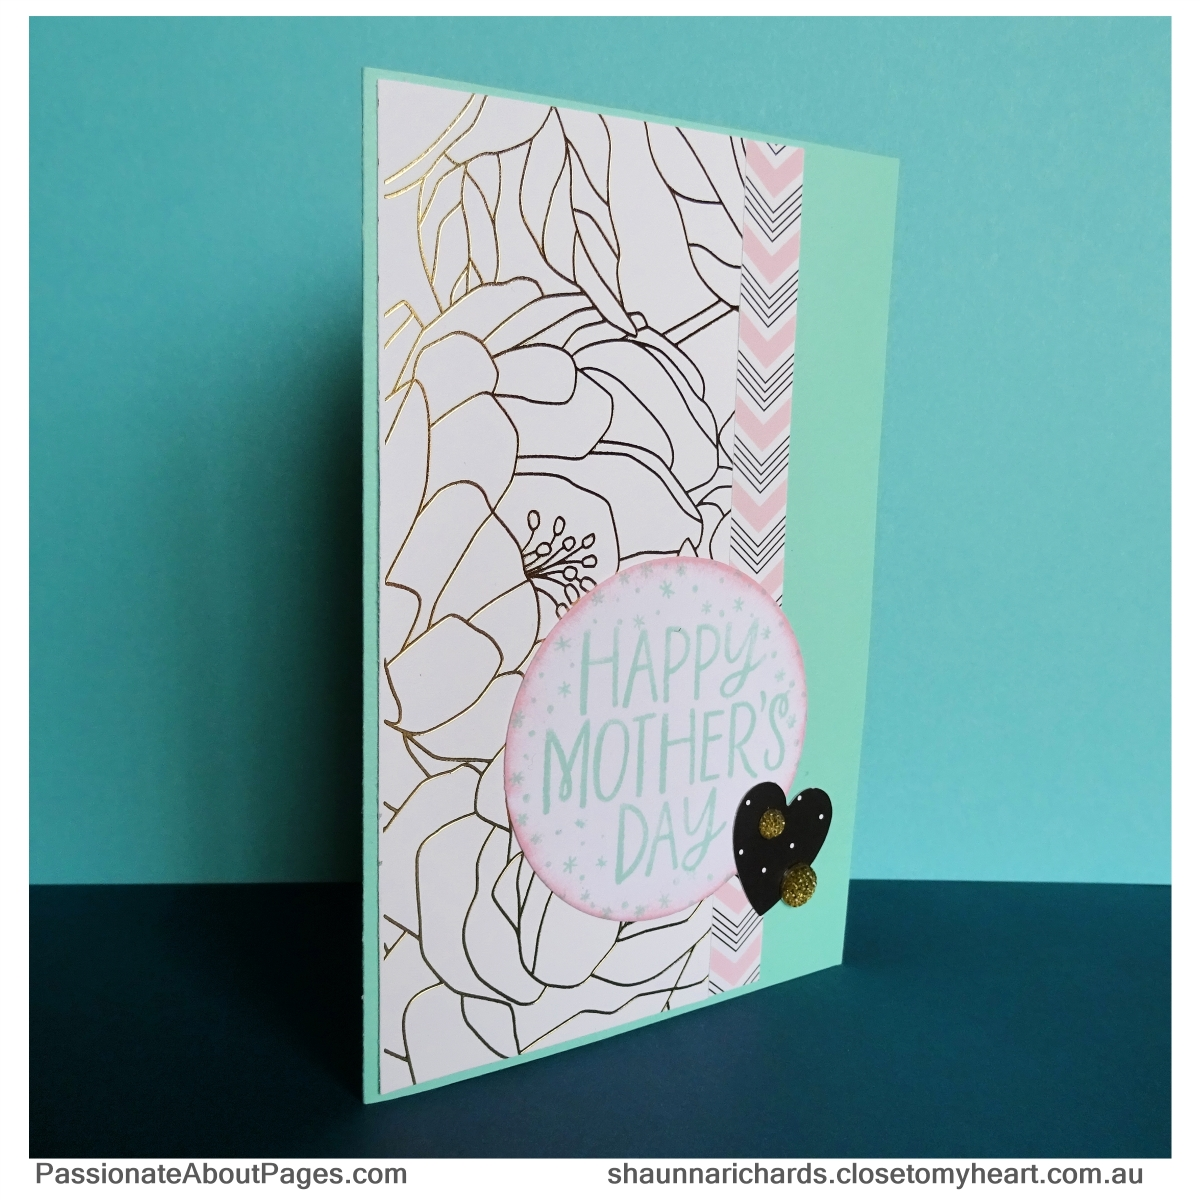 Live Beautifully is the CTMH exclusive collection for National Scrapbook Month 2017